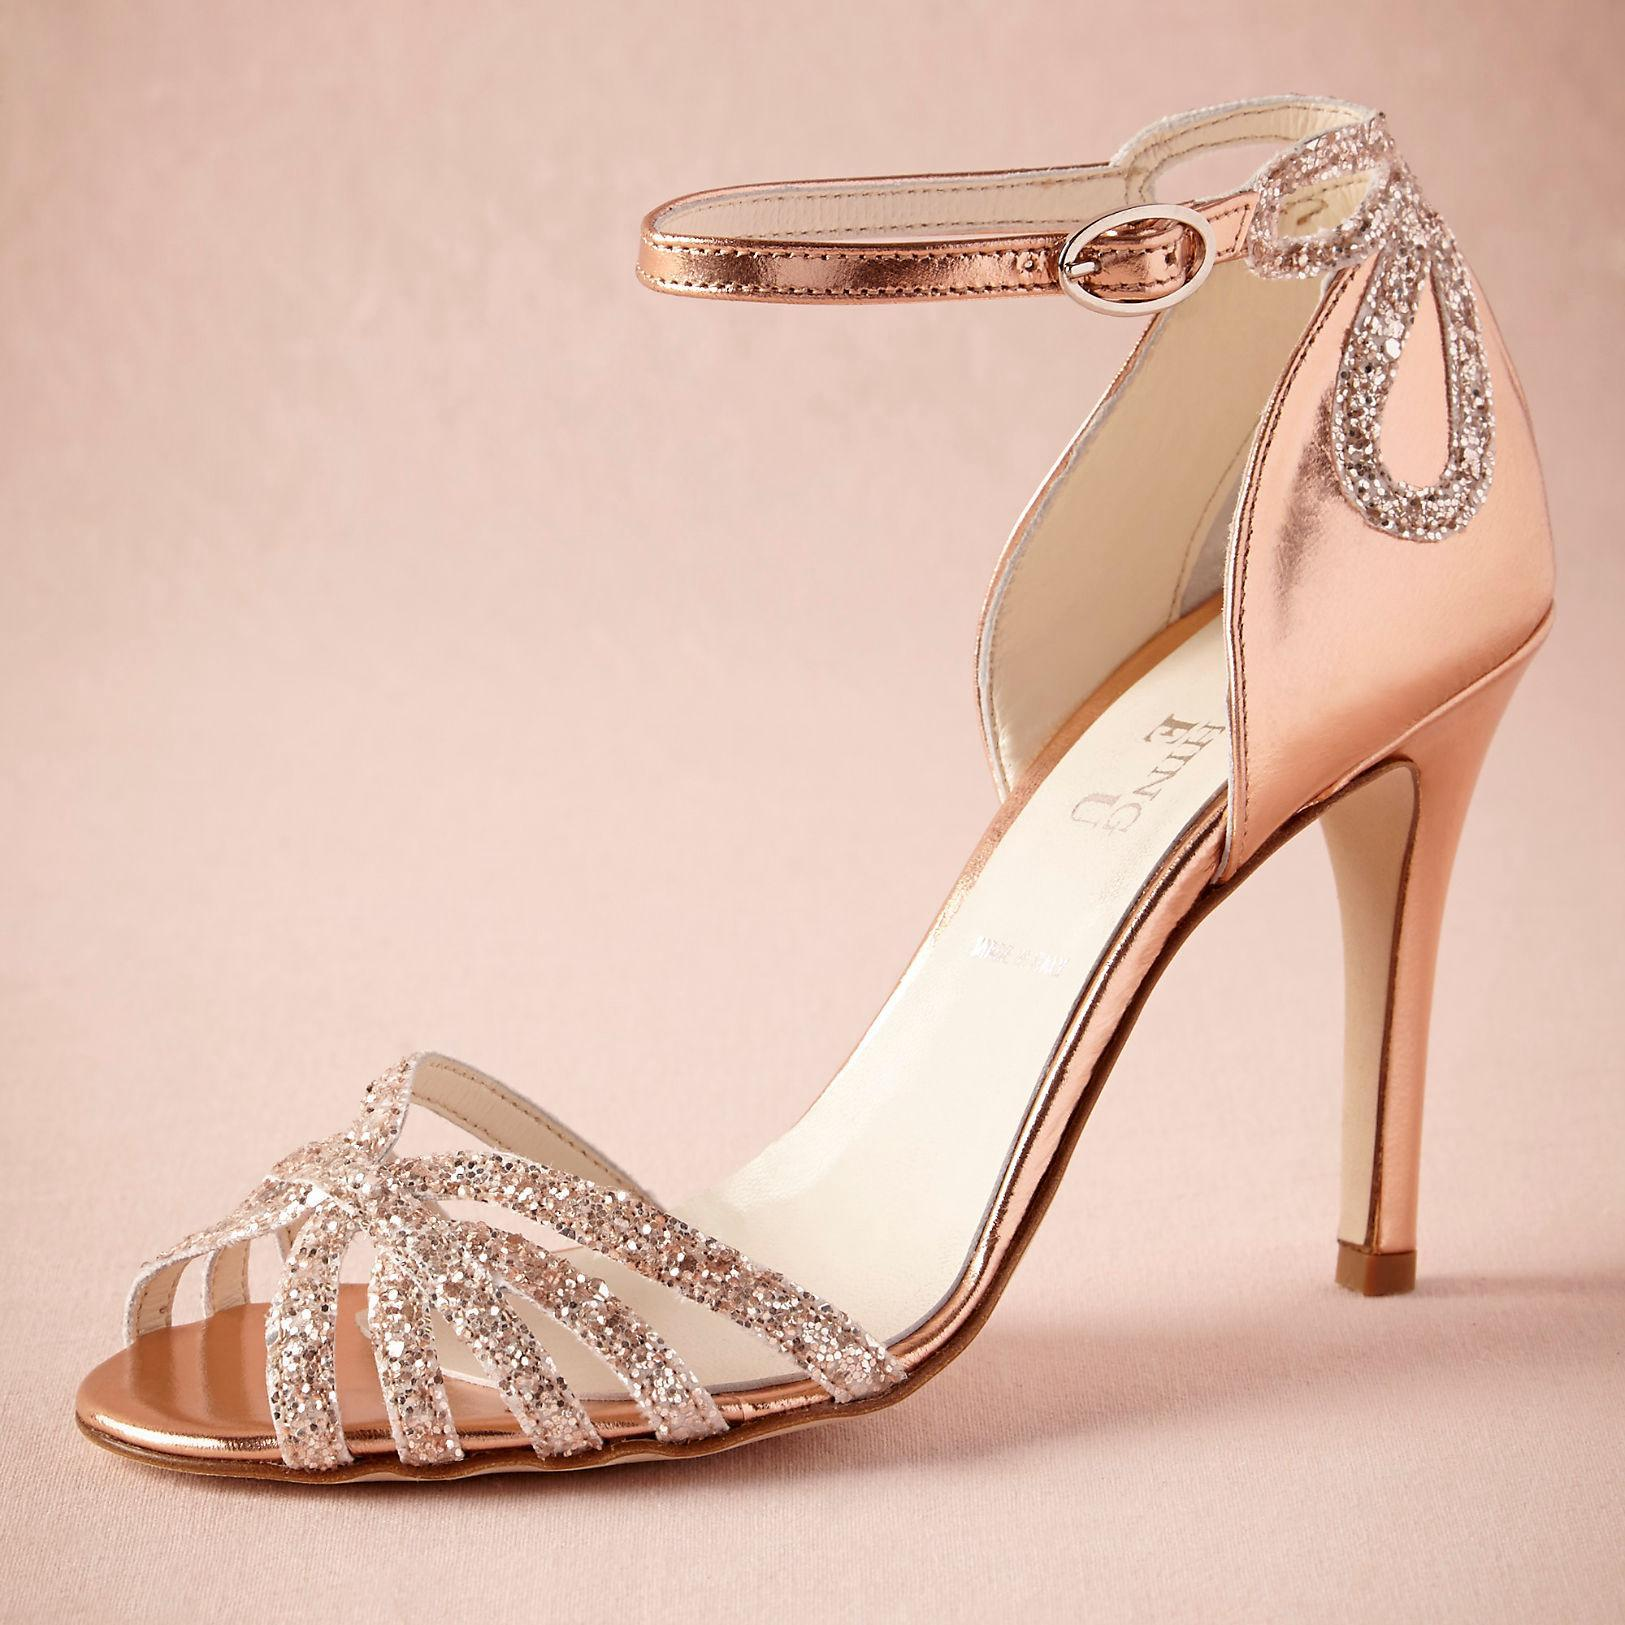 Gold Heels For Wedding tAzm9aBo